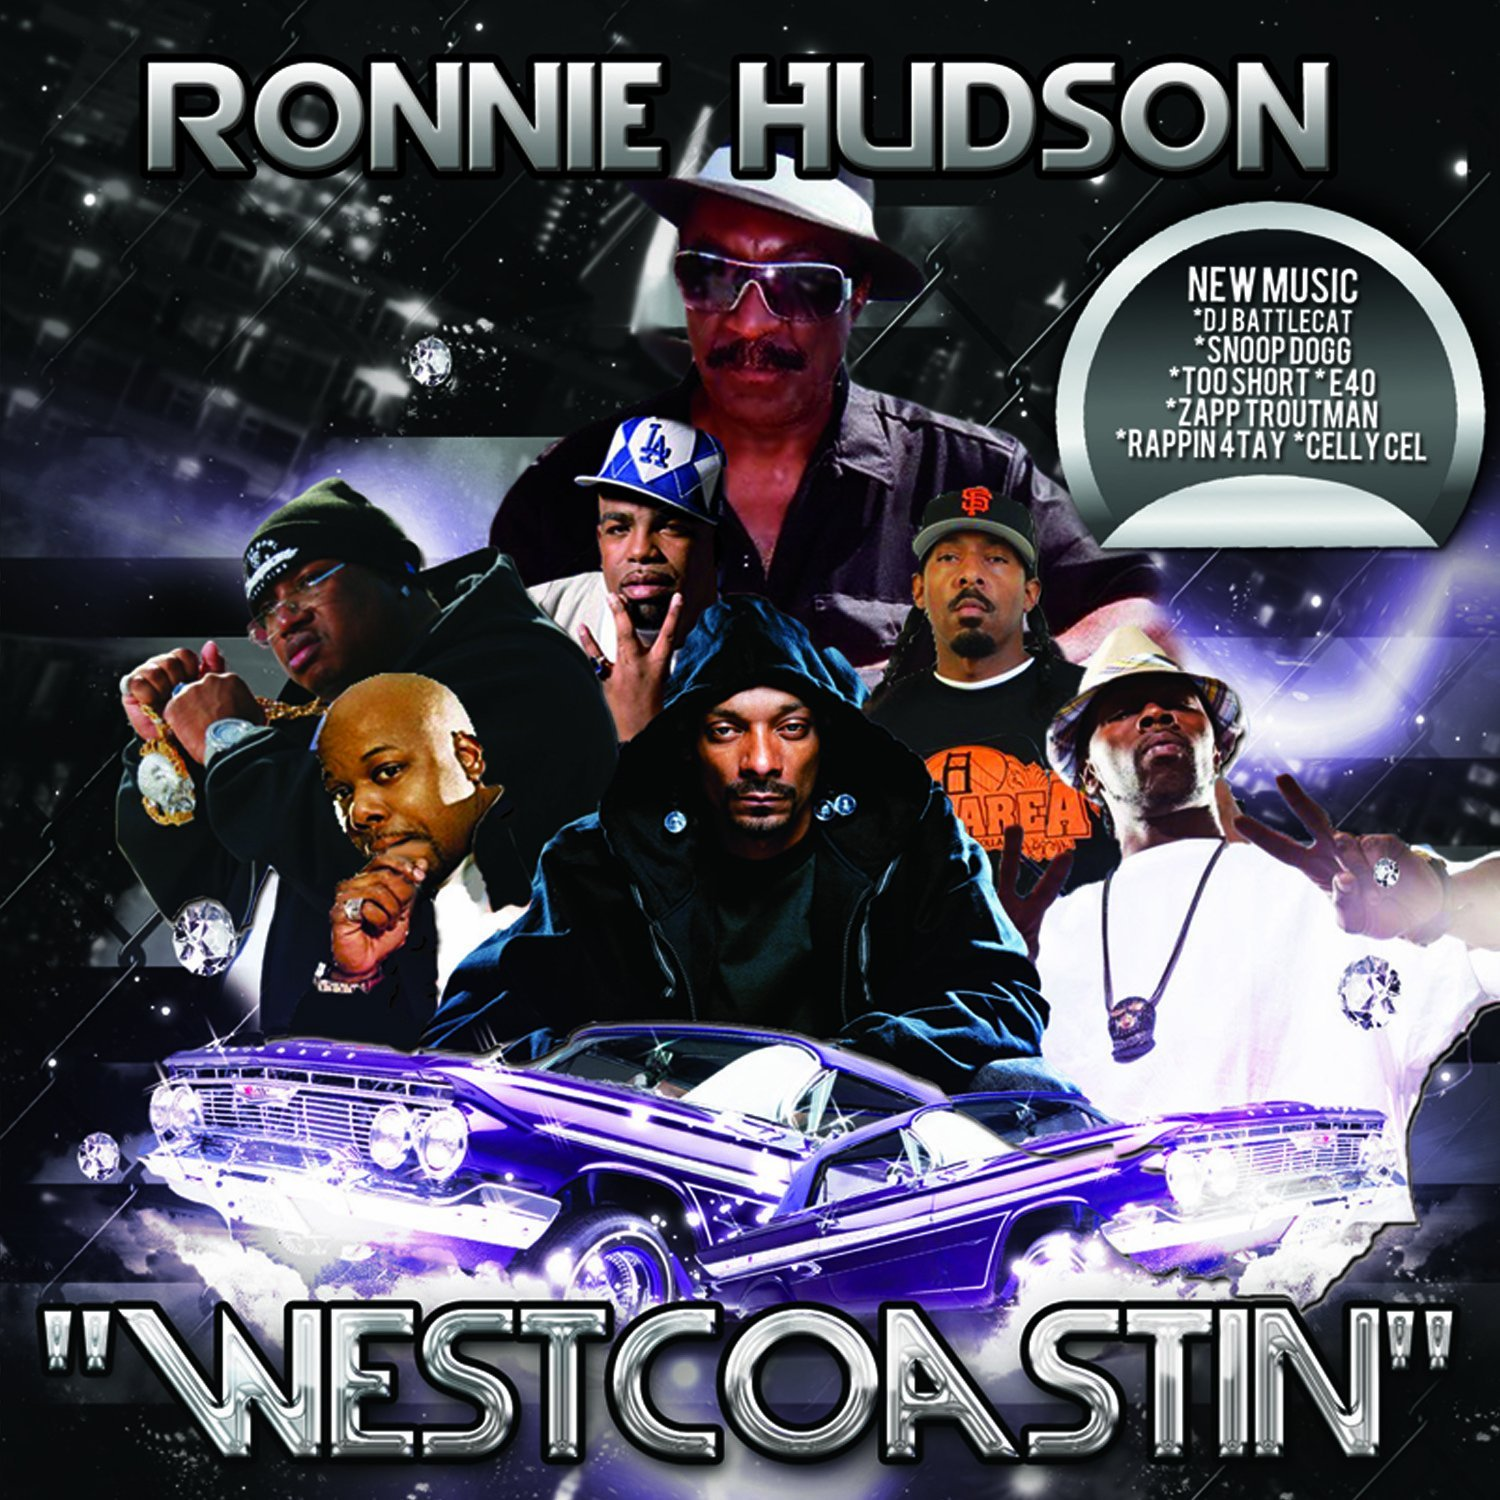 Ronnie Hudson West Coast Poplock 05